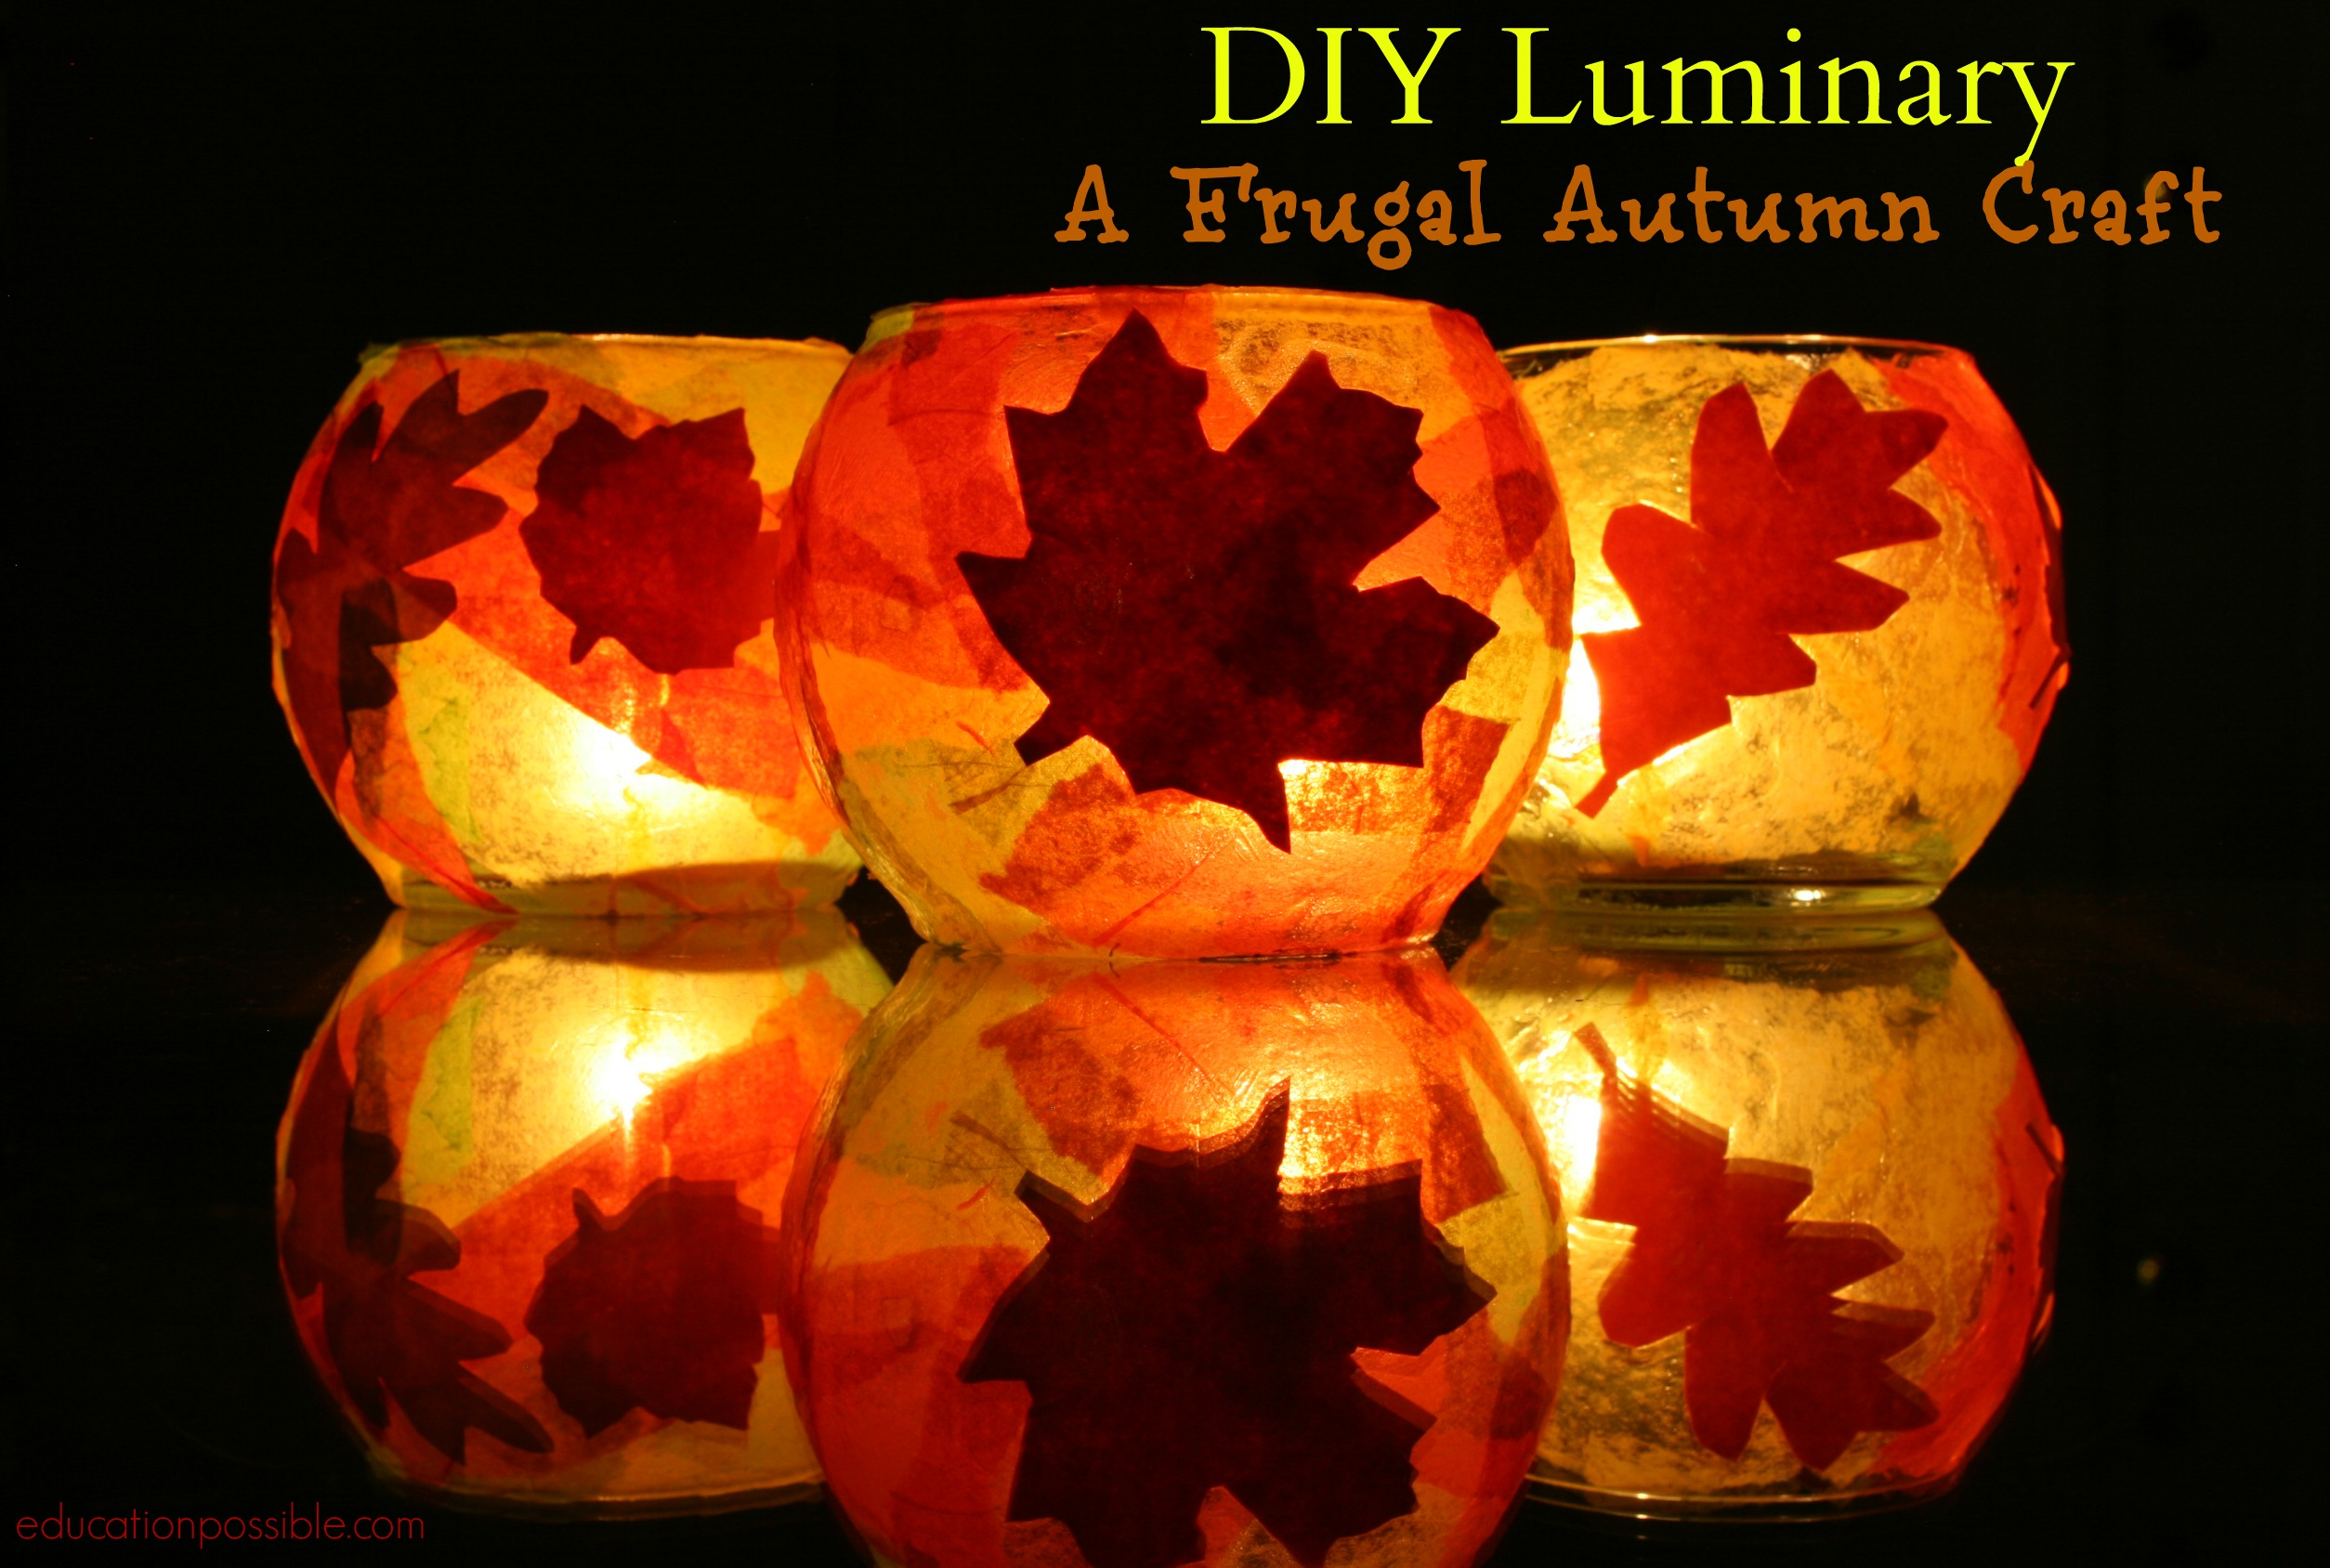 Diy luminary a frugal autumn craft for Fall decorating ideas with construction paper